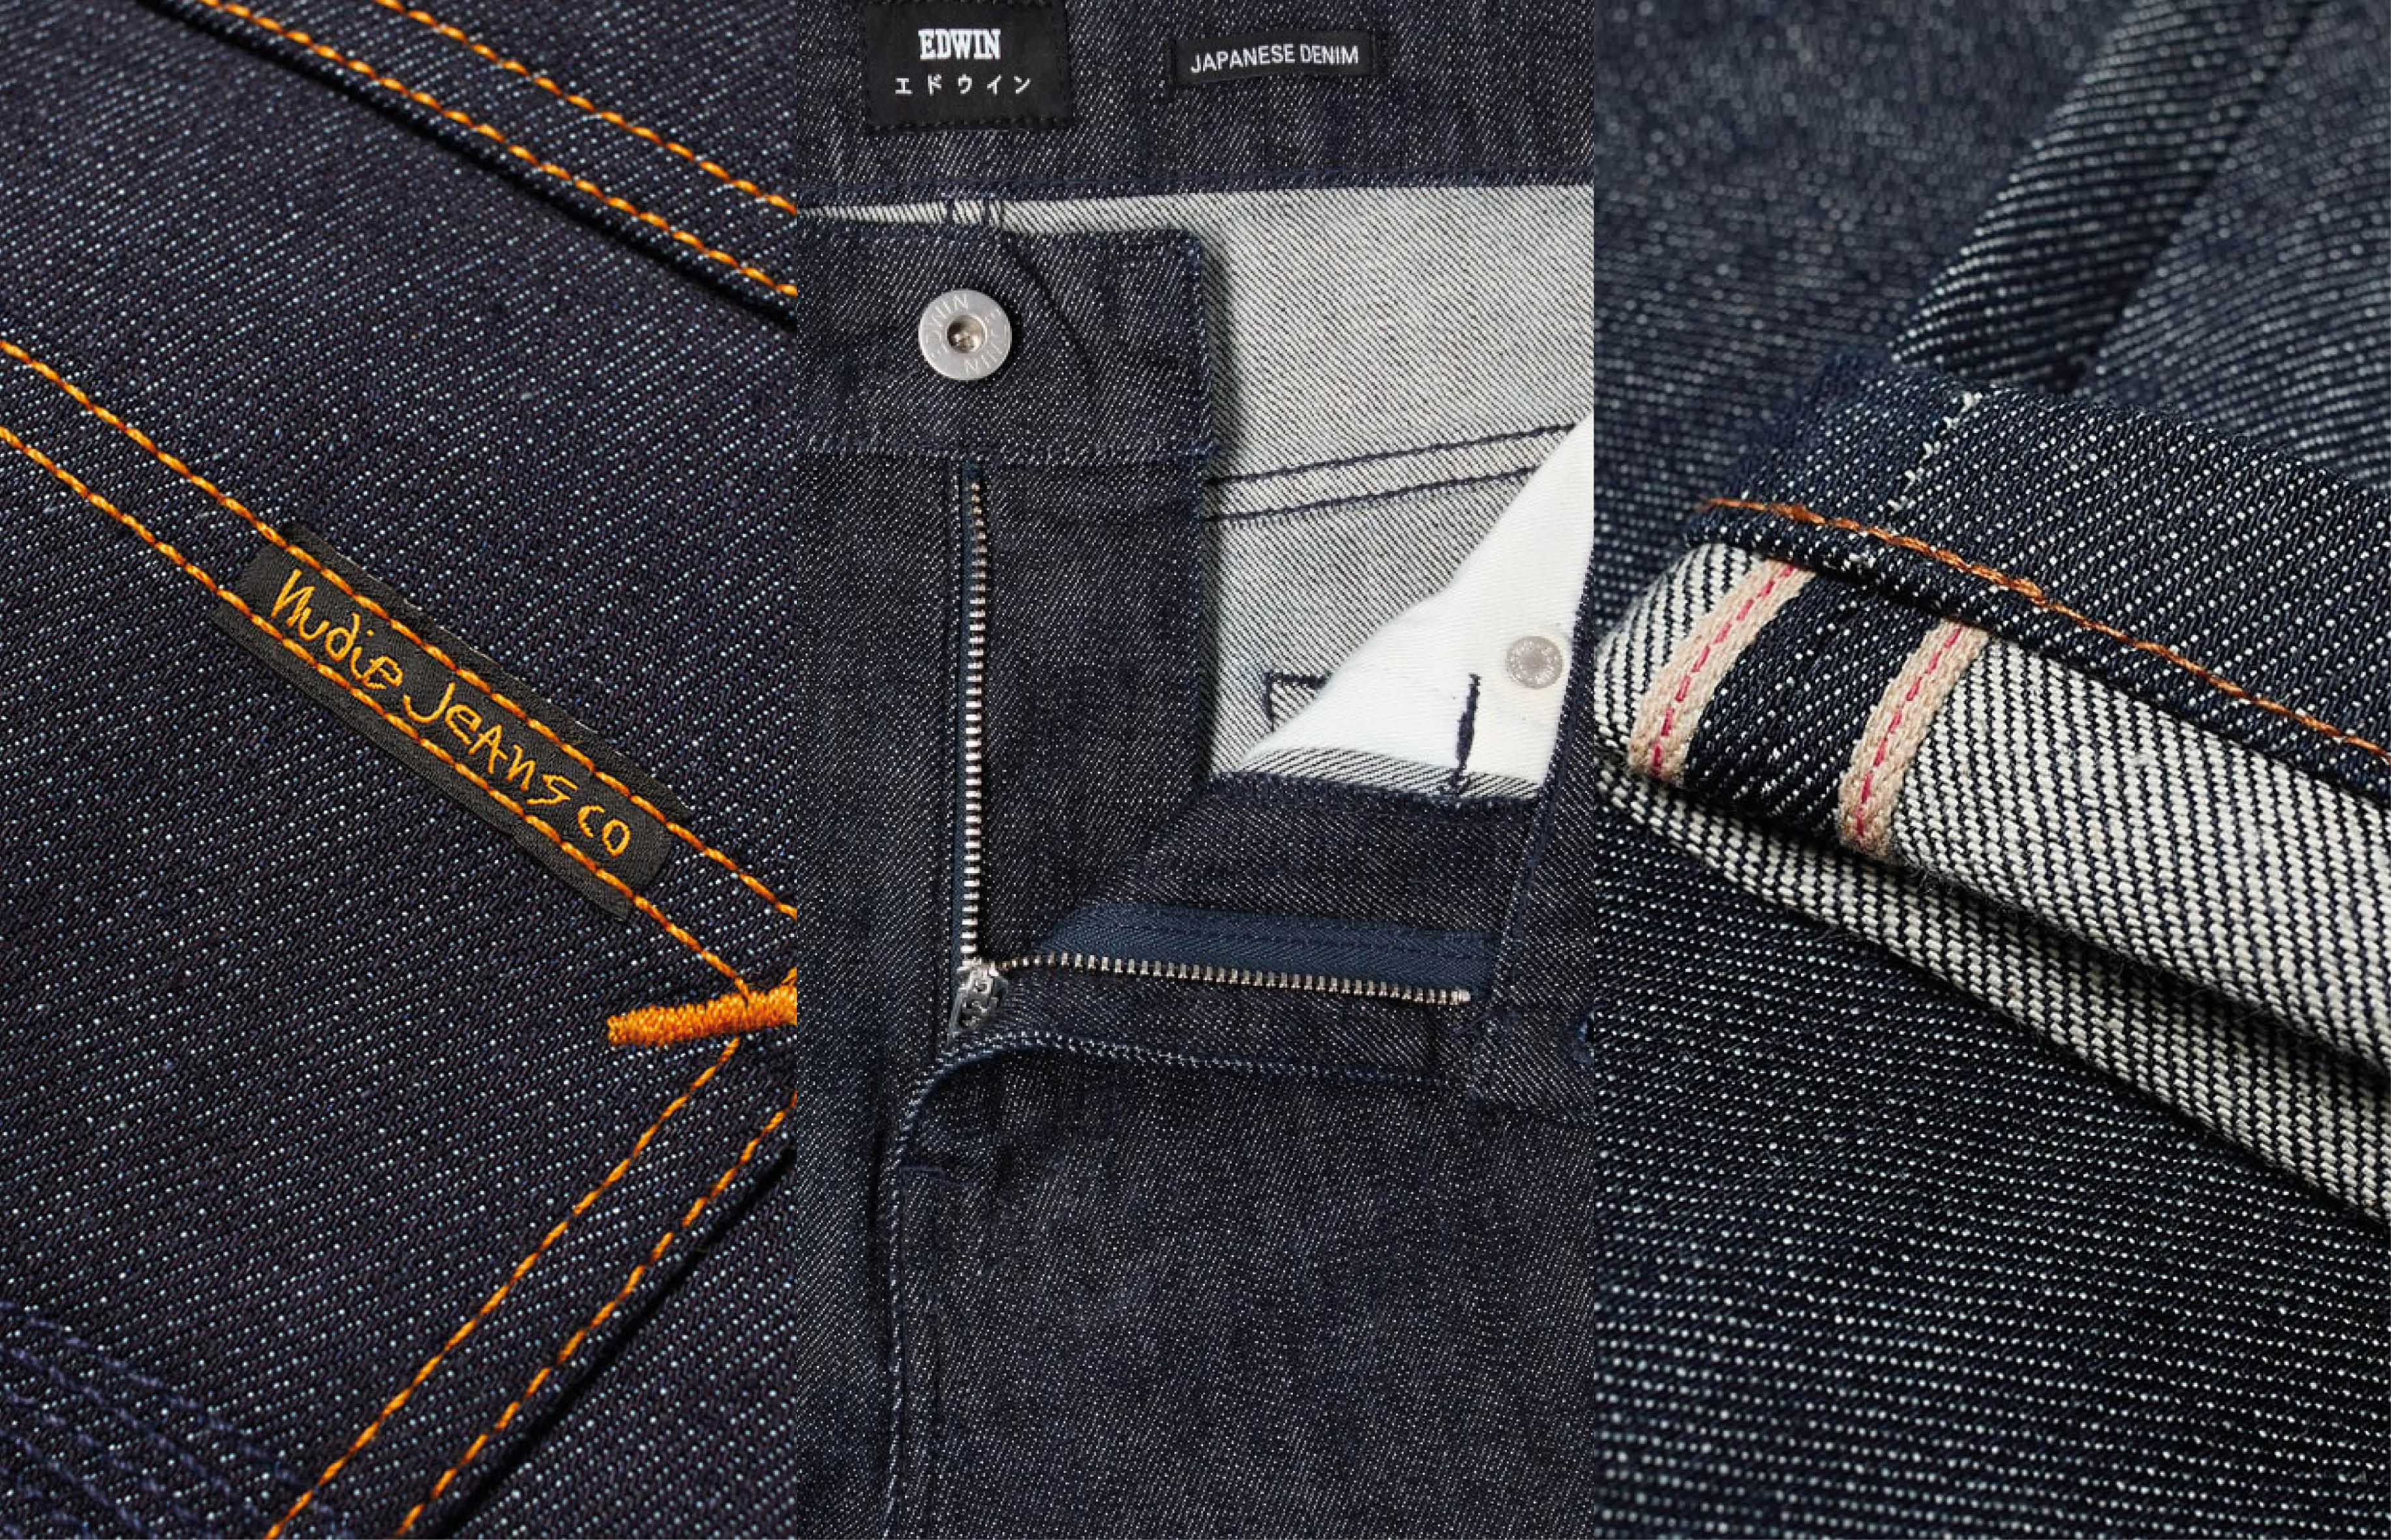 Our stylists' guide to the best slim-fit denim